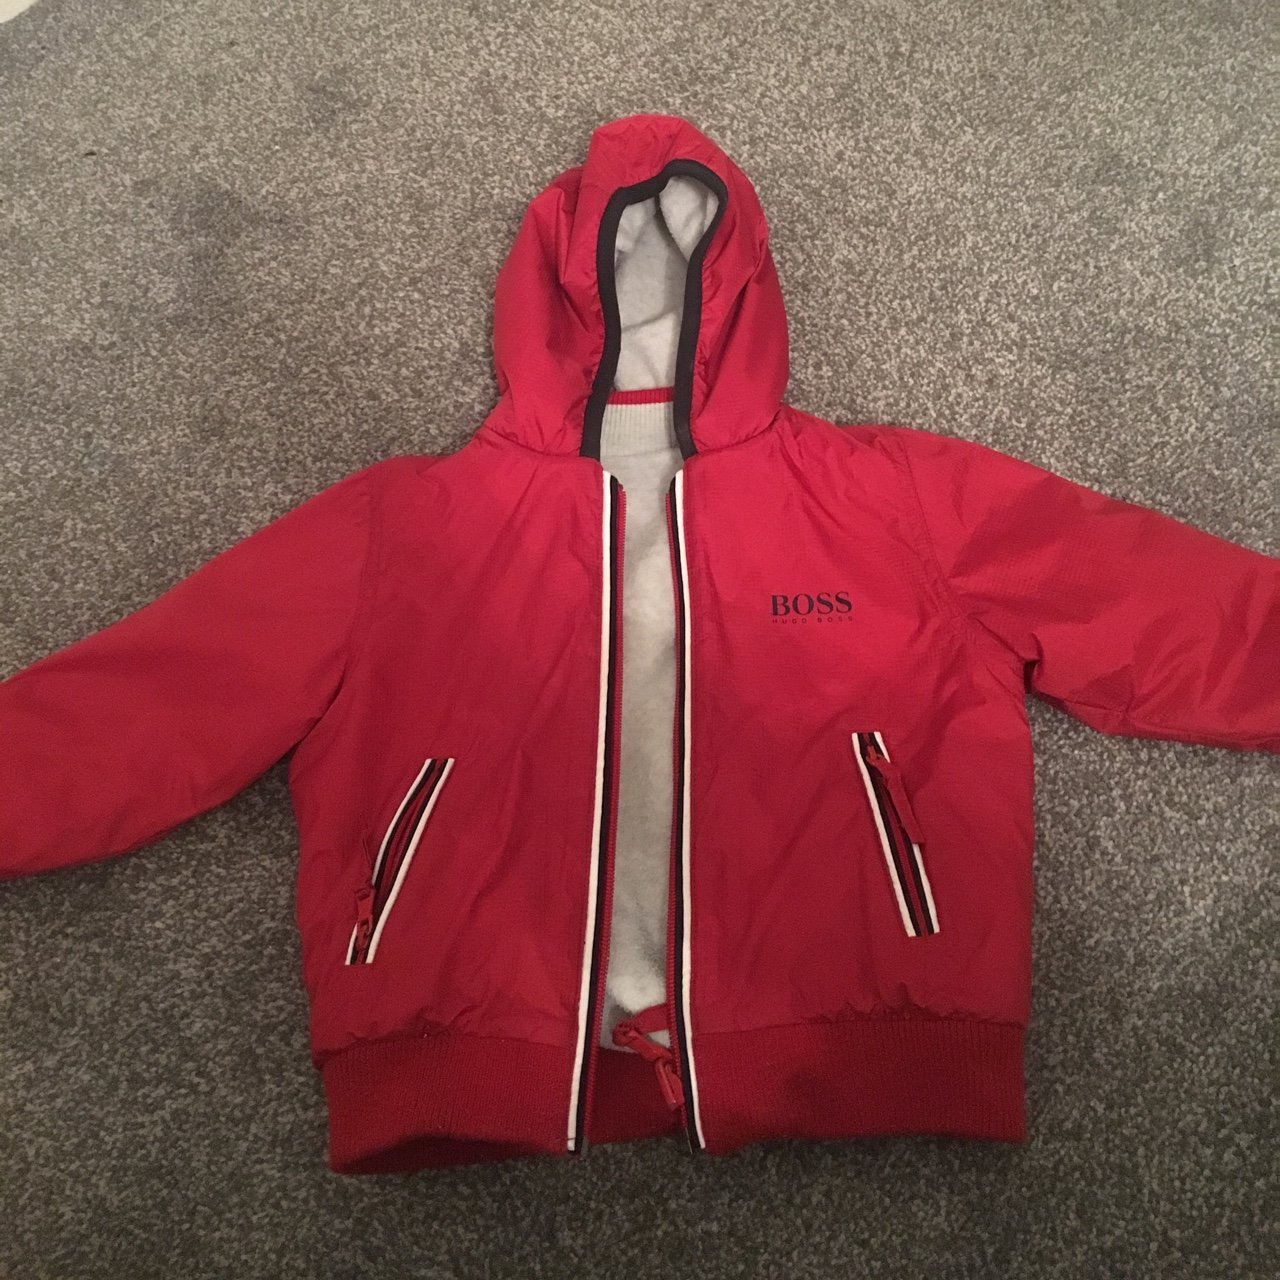 66fb0e81a4e Genuine Hugo boss red coat/jacket age 18 months great on the - Depop